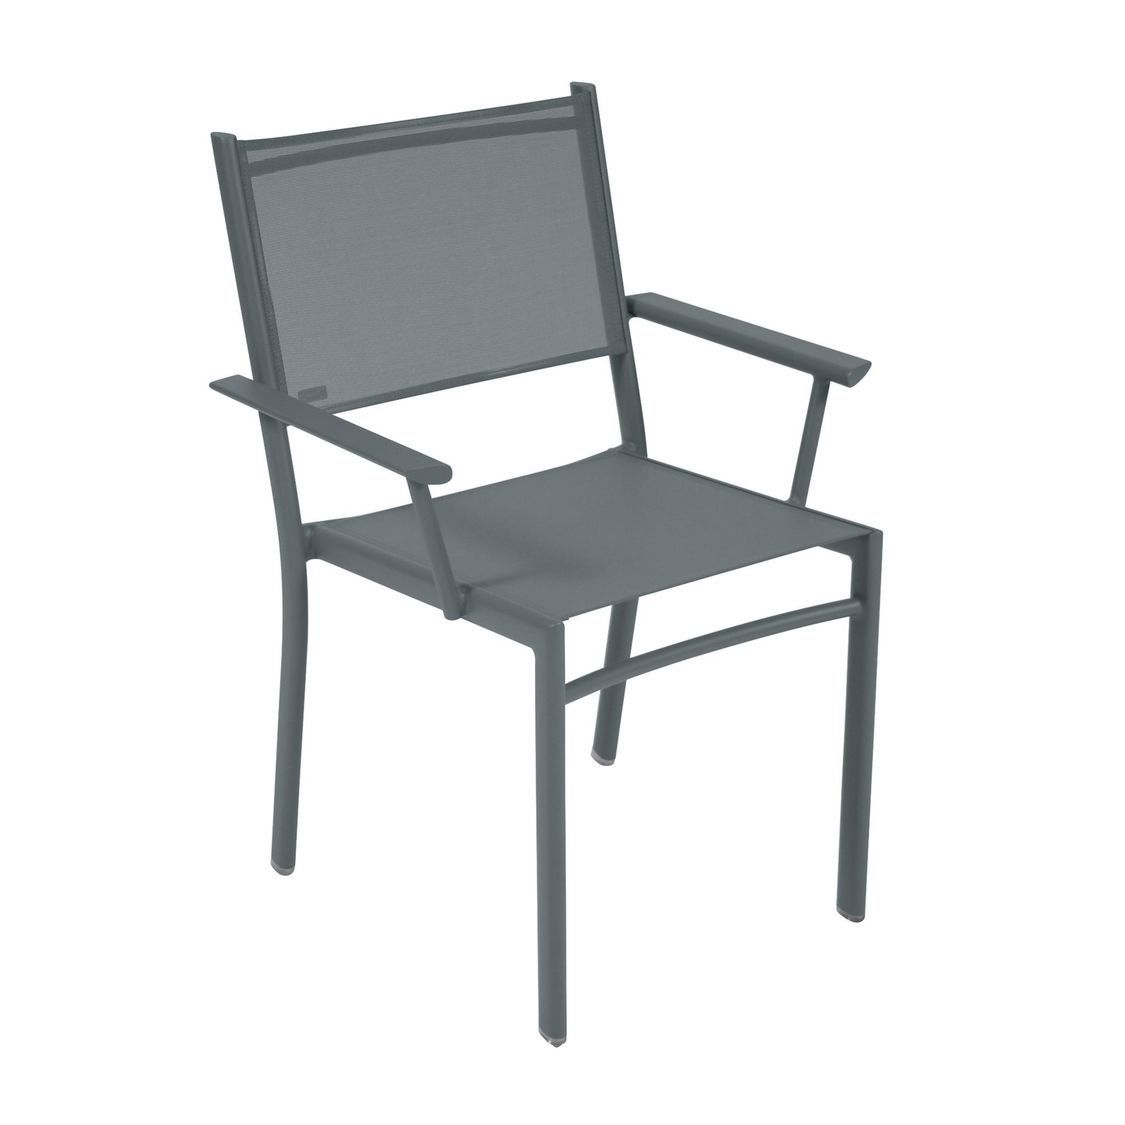 Captivating Costa Garden Armchair